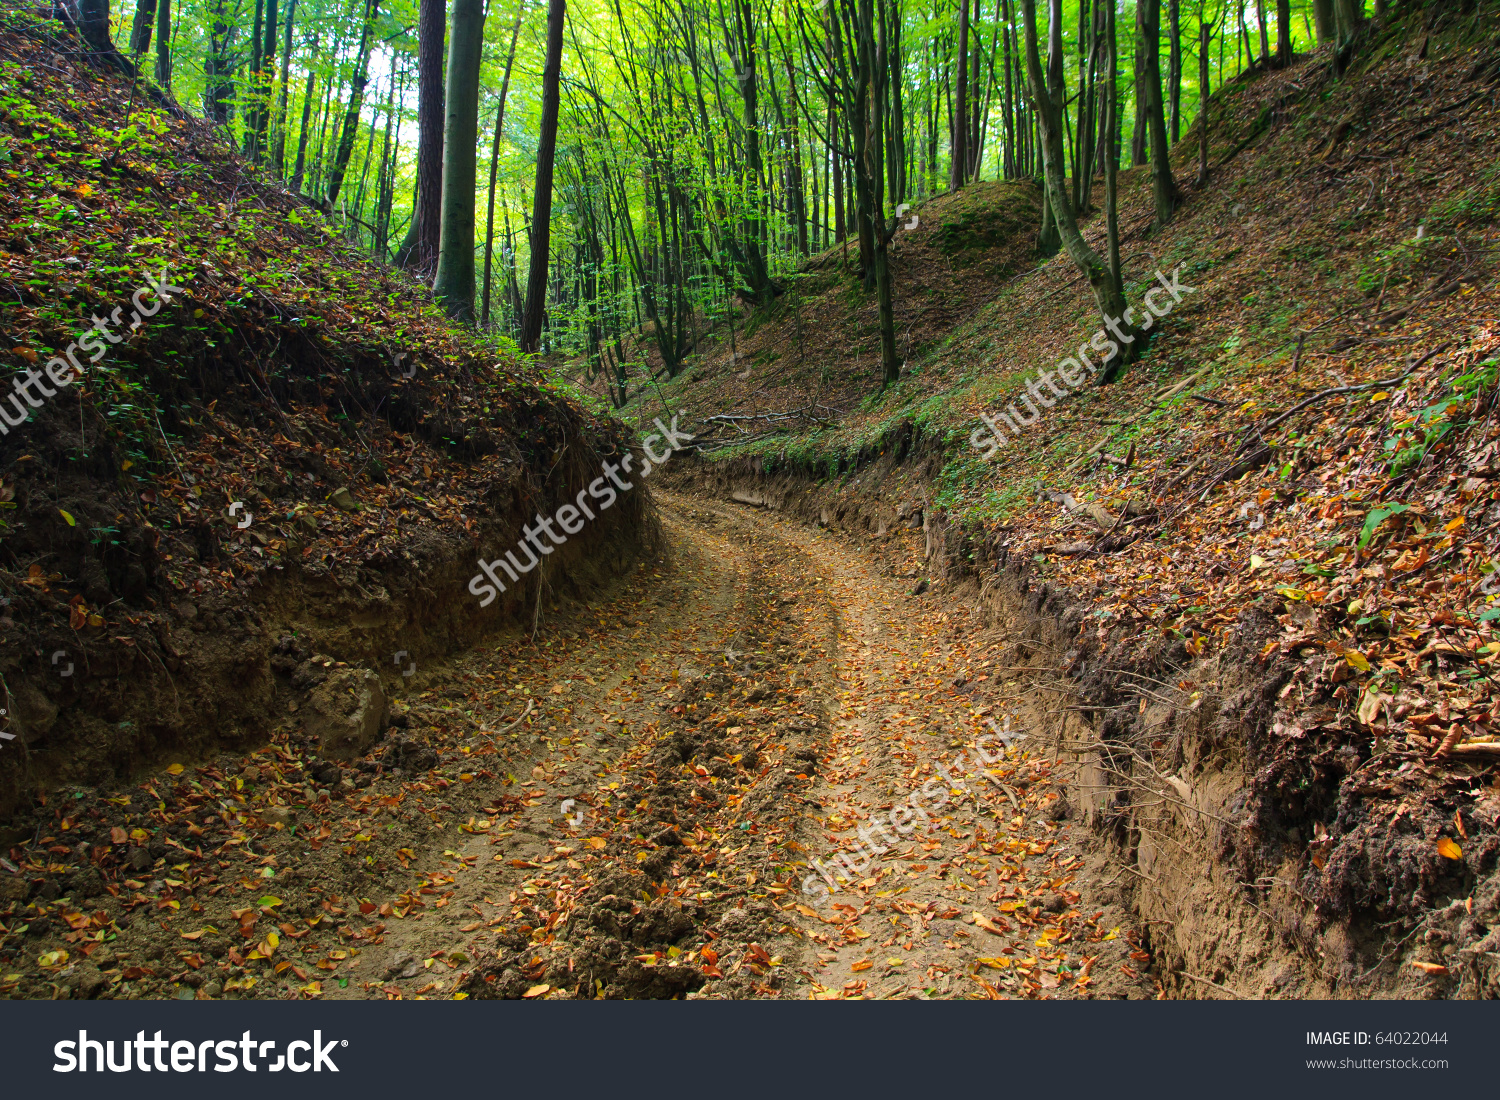 Muddy Forest Road Autumn Ravine Colourful Stock Photo 64022044.